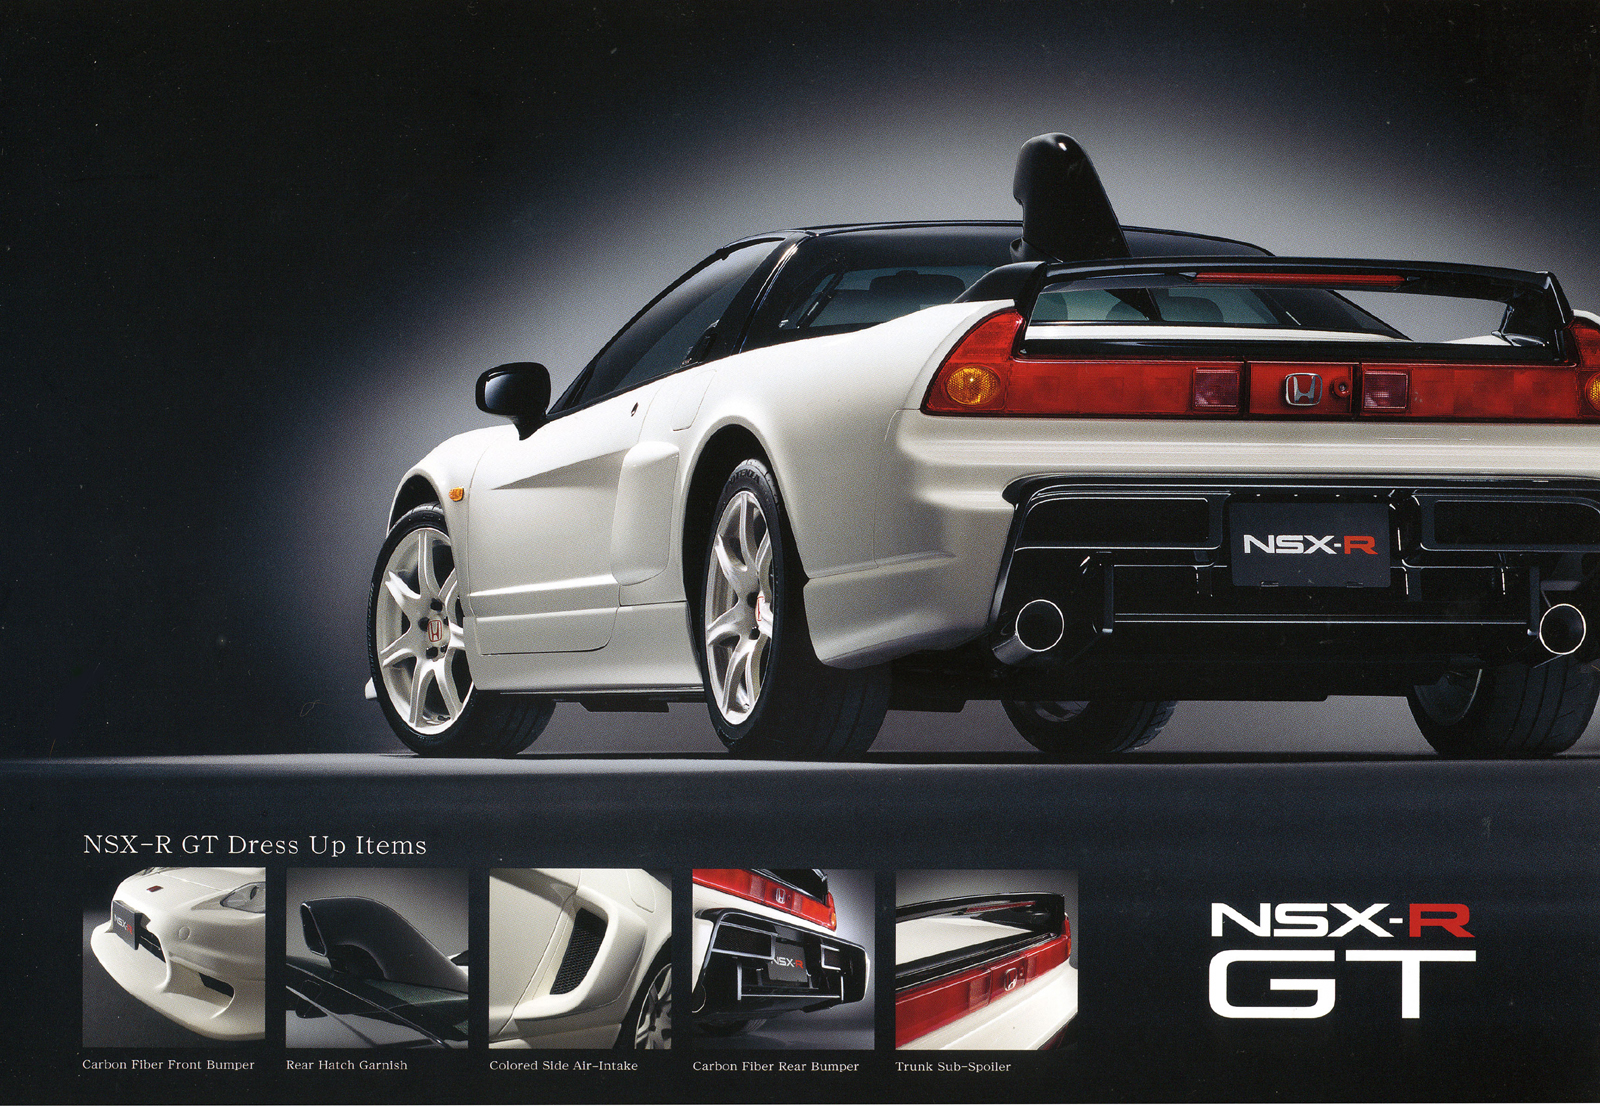 R34 Wallpaper Hd Nsx R Gt Jdm Brochure Scanned